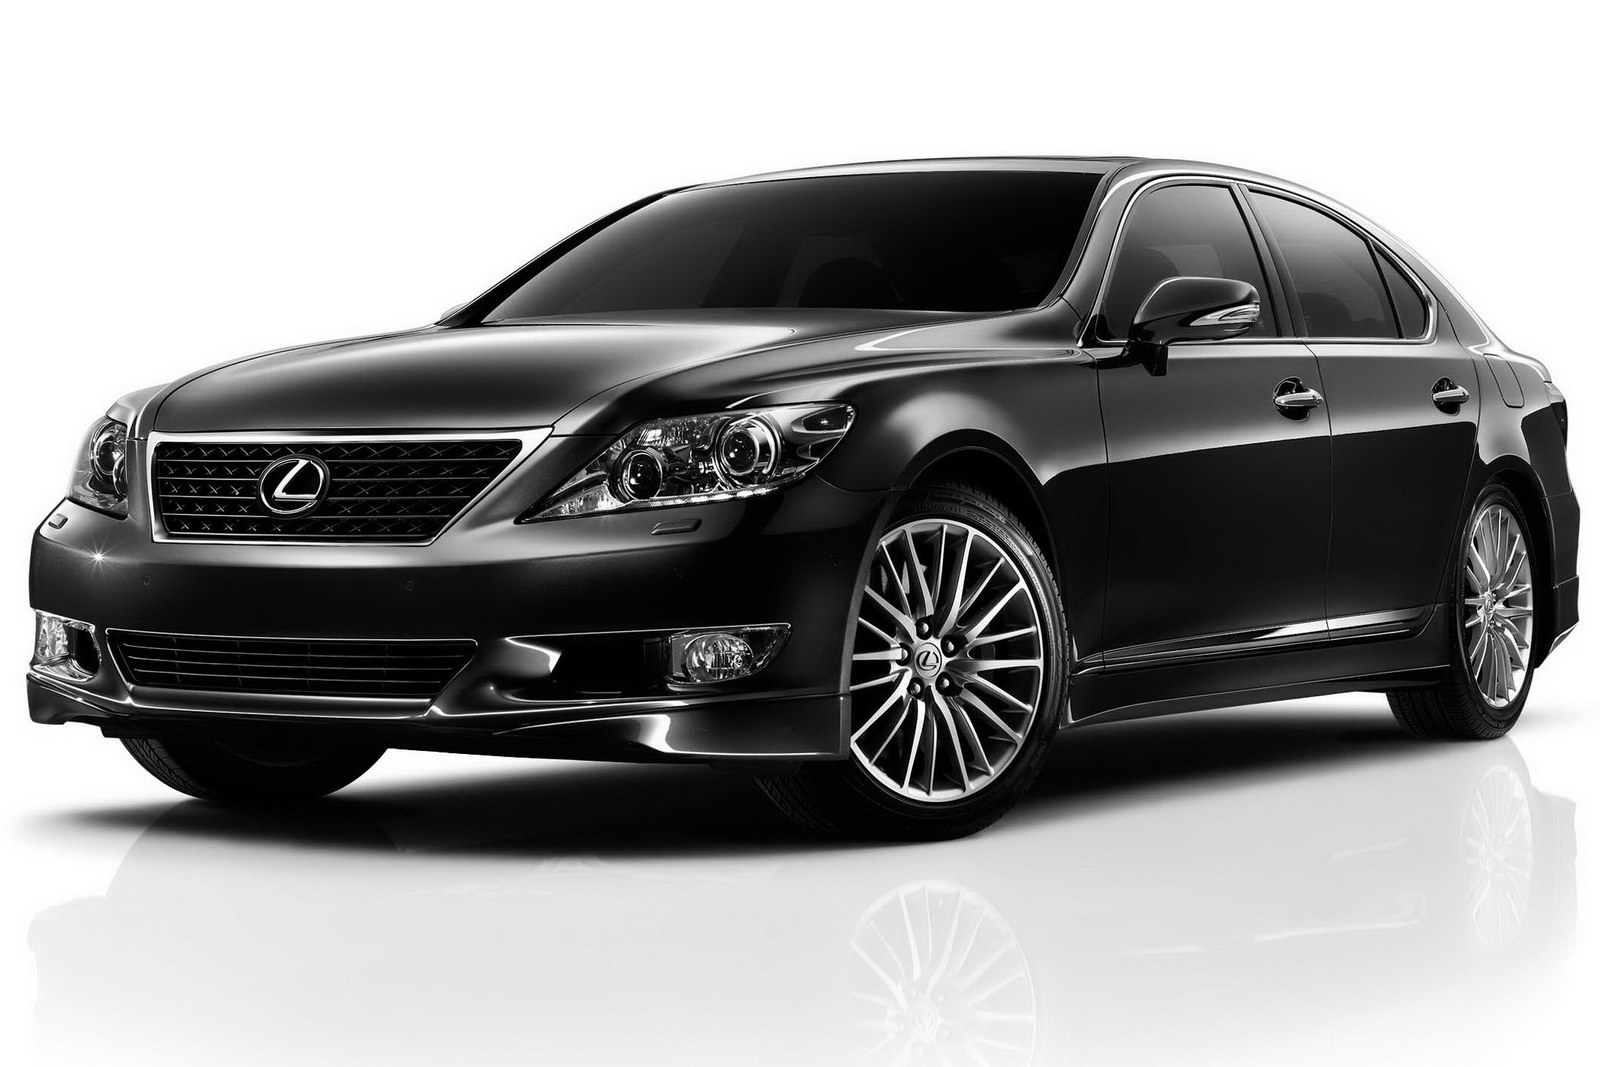 2012 Lexus CT 200h, ES 350 and LS 460 Special Editions ...